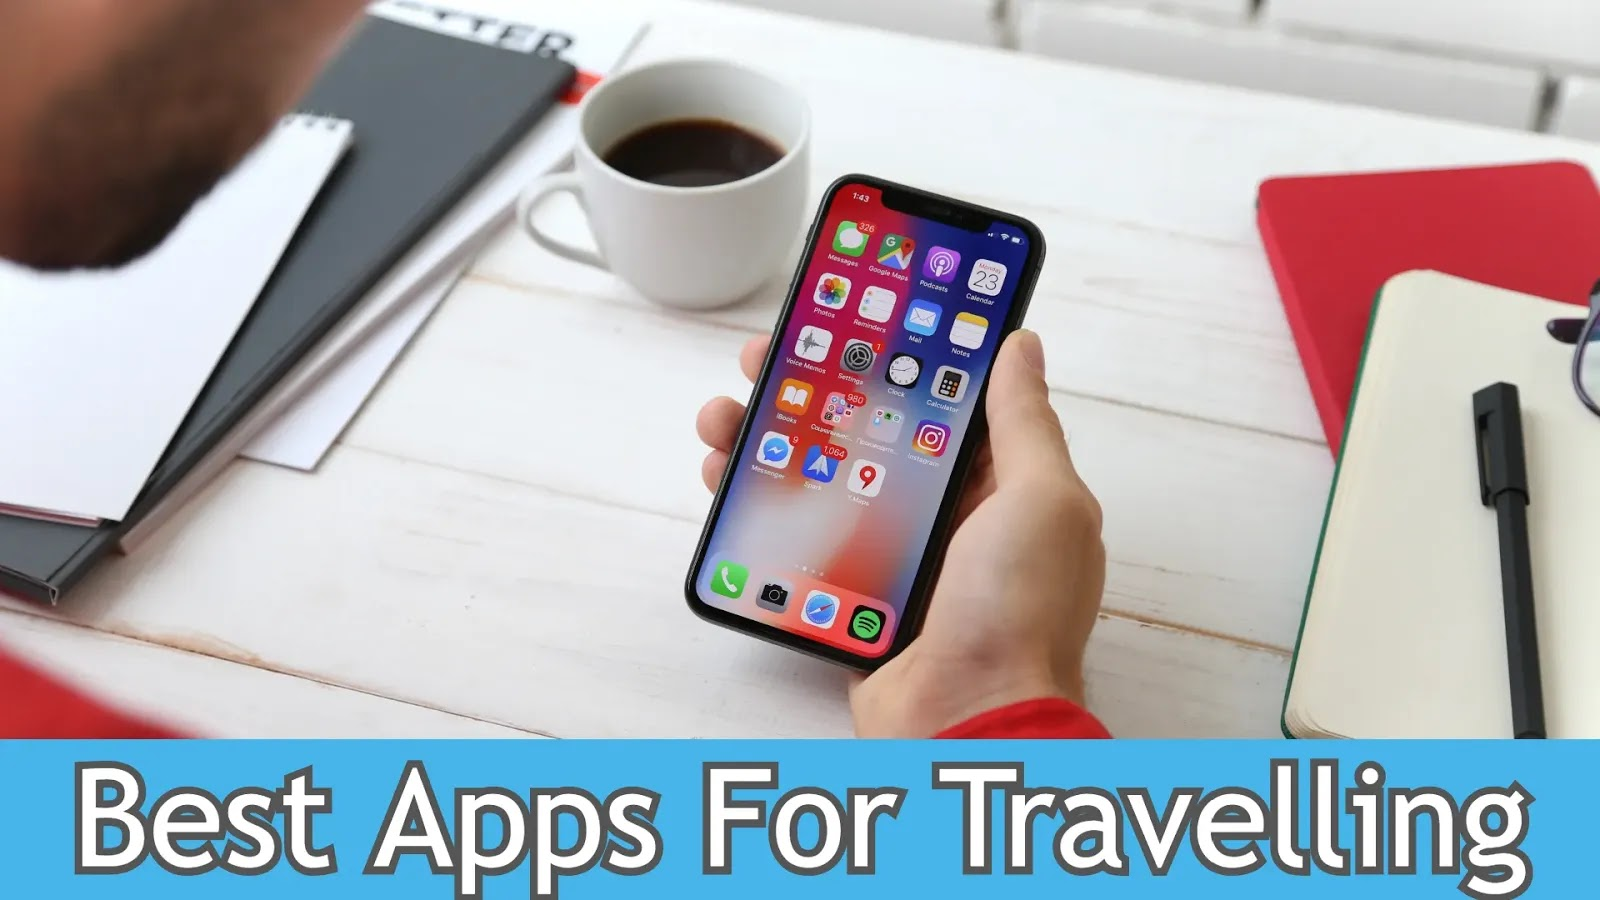 Top 10 Best Apps for Travelling